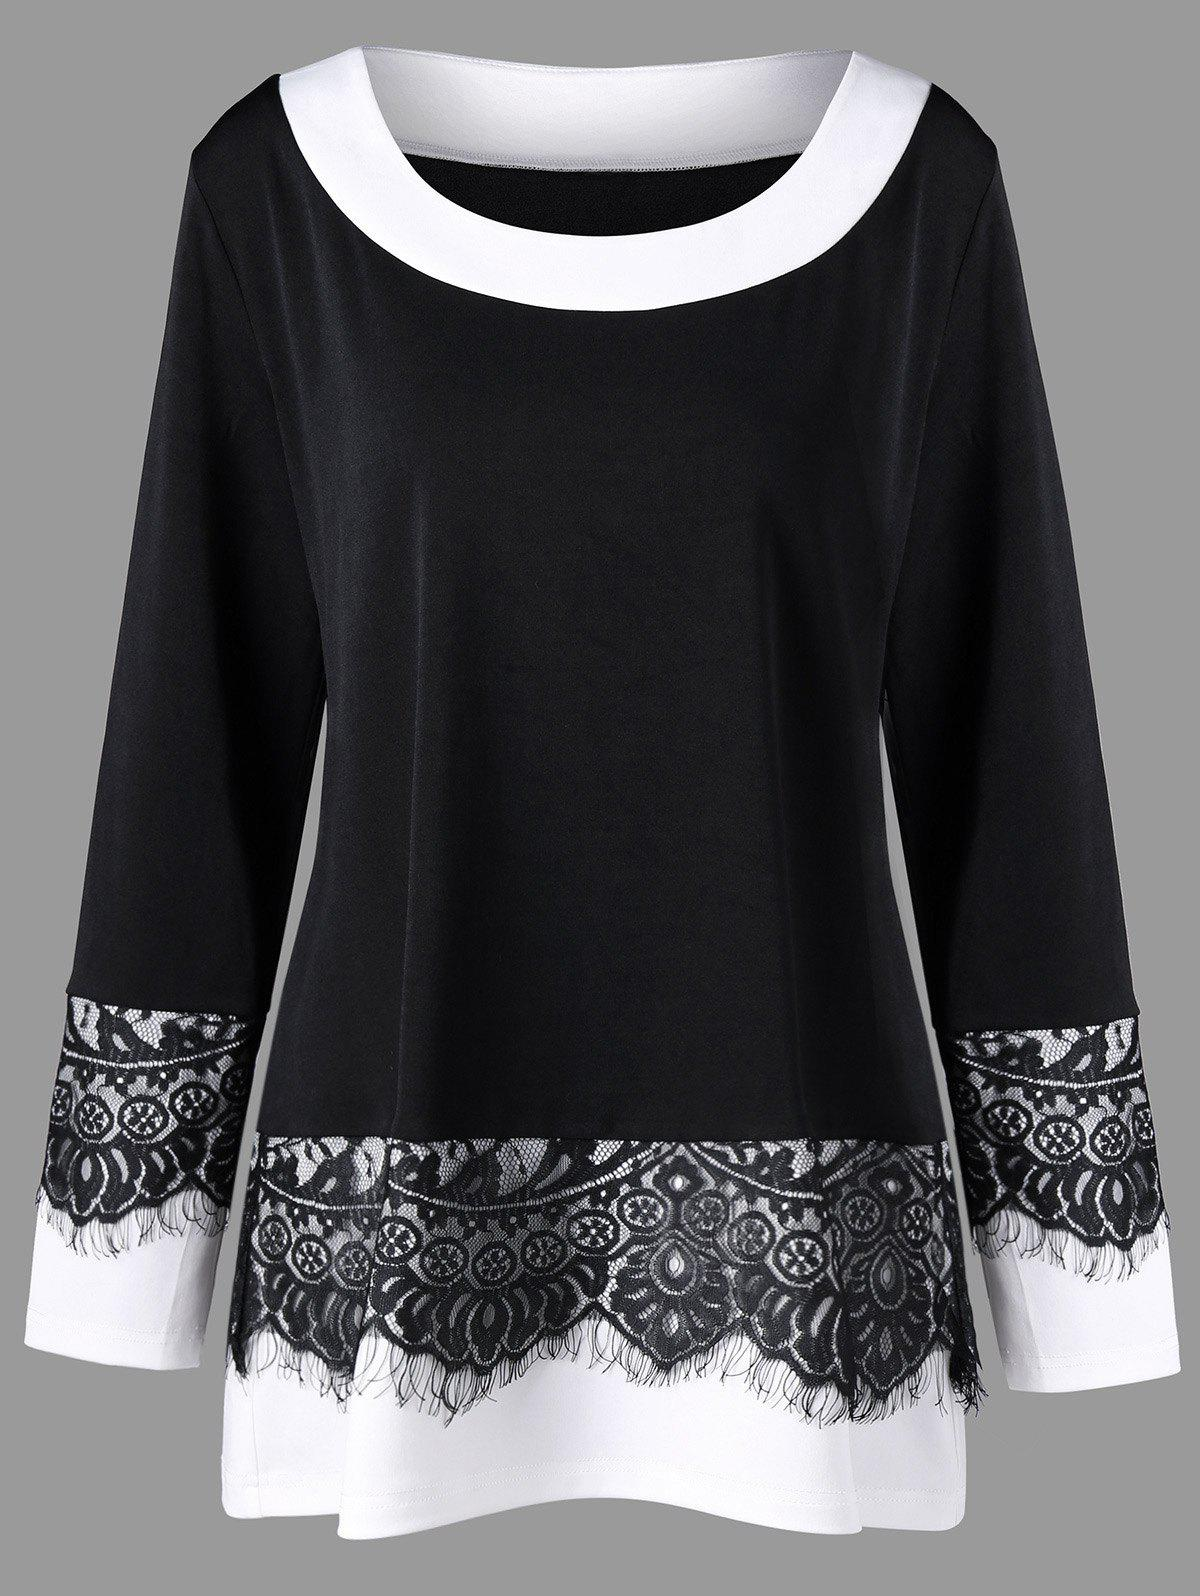 Plus Size Two Tone Eyelash Lace Panel TopWOMEN<br><br>Size: 4XL; Color: BLACK; Material: Polyester,Spandex; Shirt Length: Long; Sleeve Length: Full; Collar: Round Neck; Style: Fashion; Season: Fall,Spring; Embellishment: Lace; Pattern Type: Solid; Weight: 0.3500kg; Package Contents: 1 x Top;